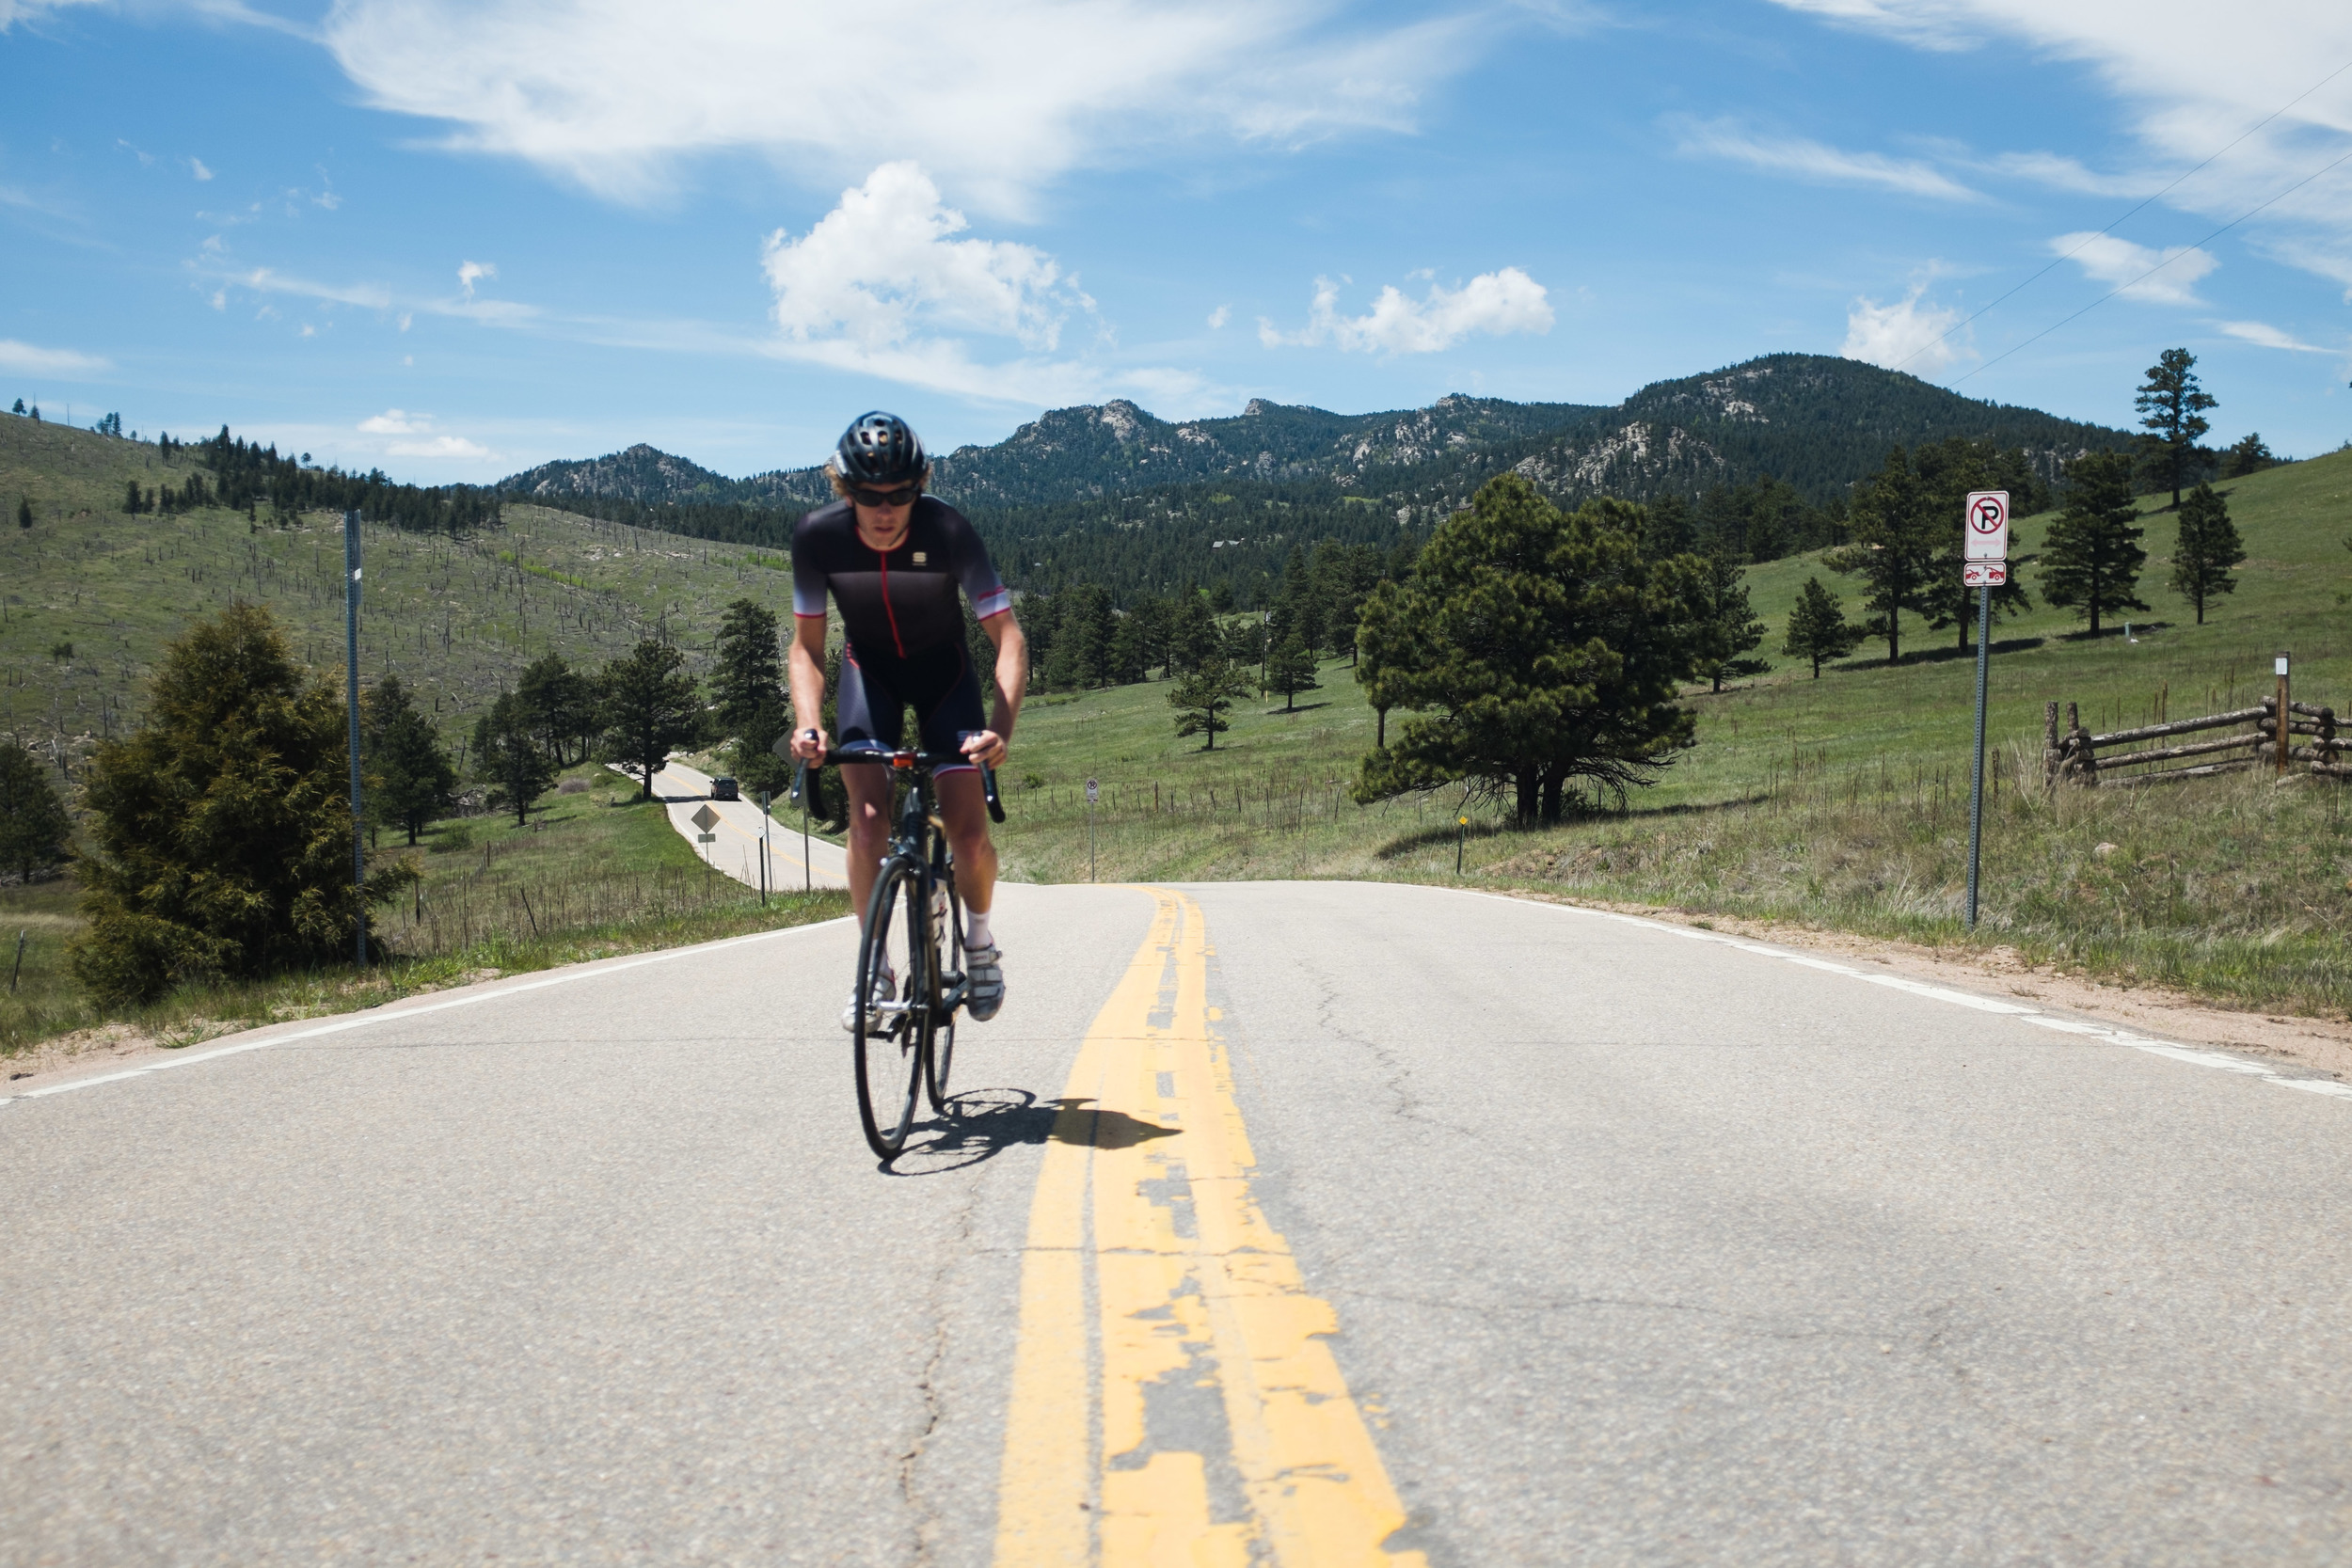 Sportful kit is bred in the mountains, and excels with speed